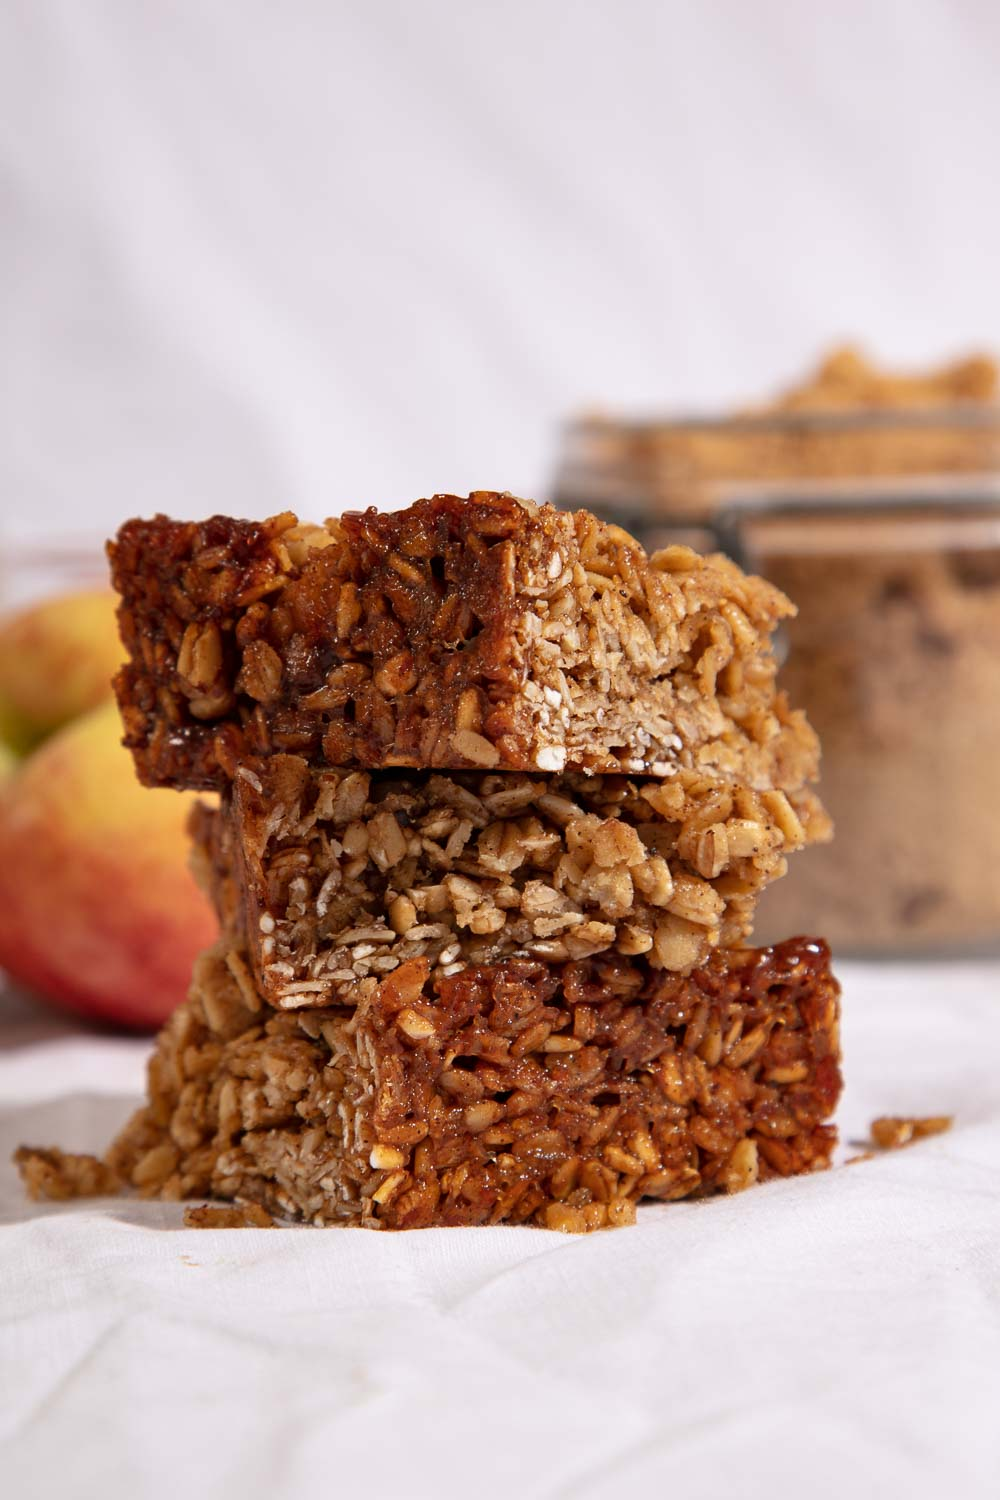 Stacked slices of apple and cinnamon flapjacks with the ingredients to make them in the background.